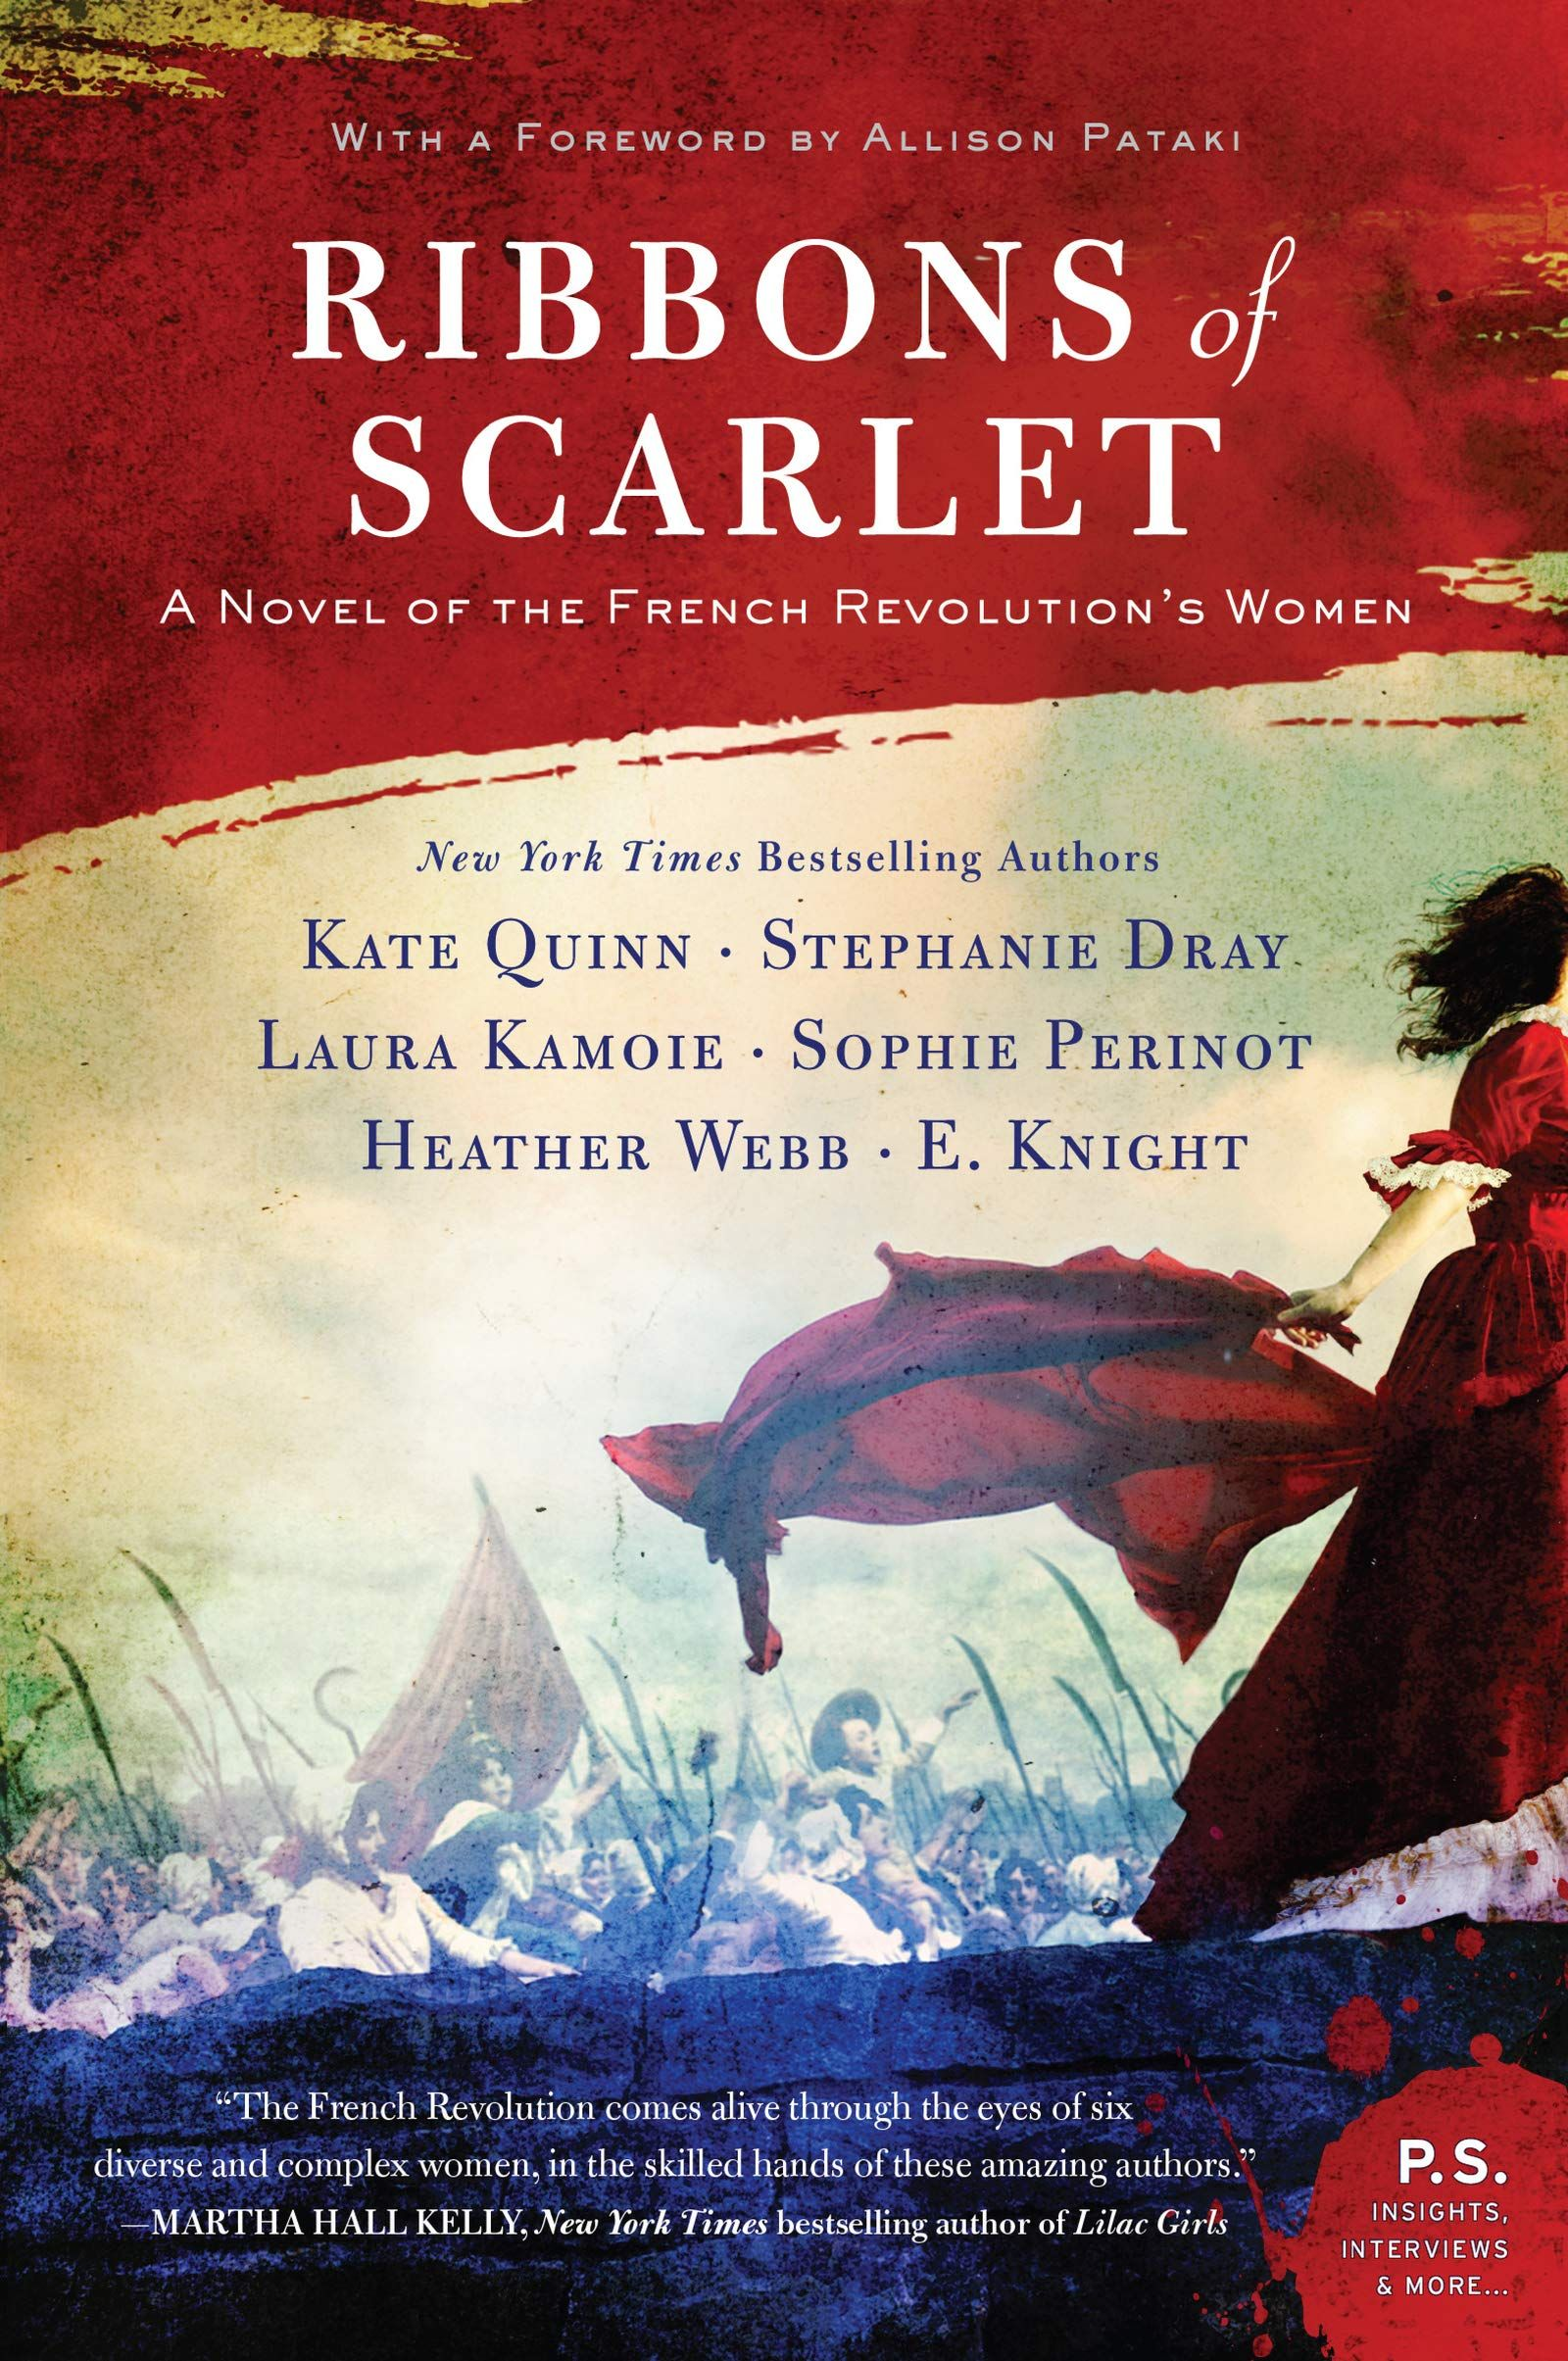 [Book] Ribbons of Scarlet A Novel of the French